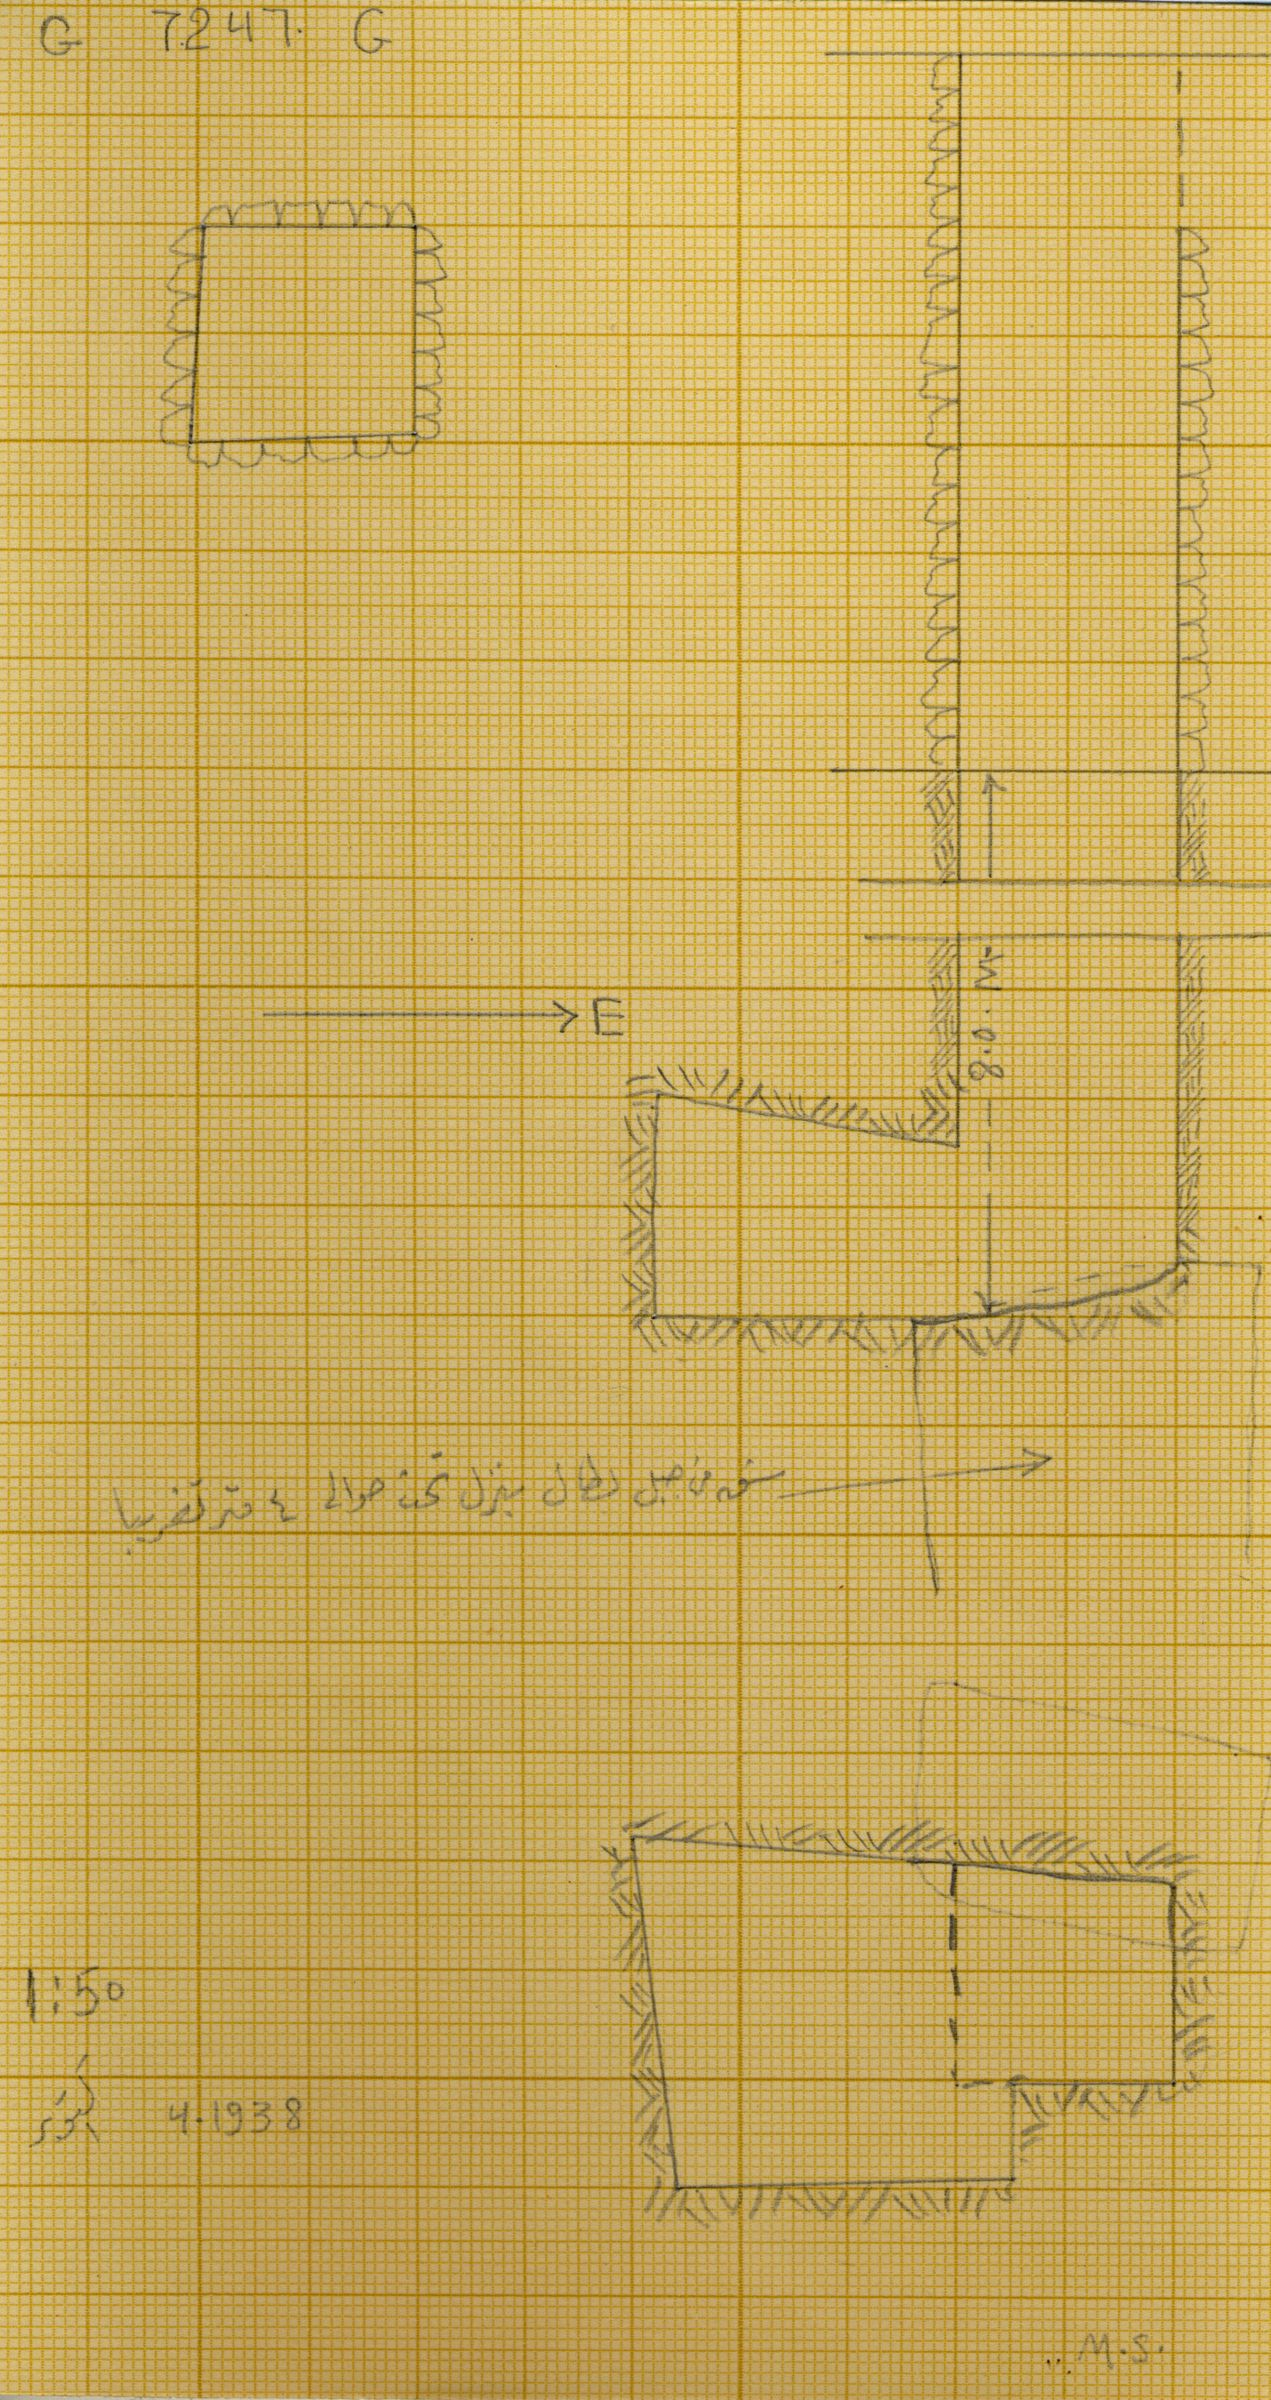 Maps and plans: G 7247, Shaft G